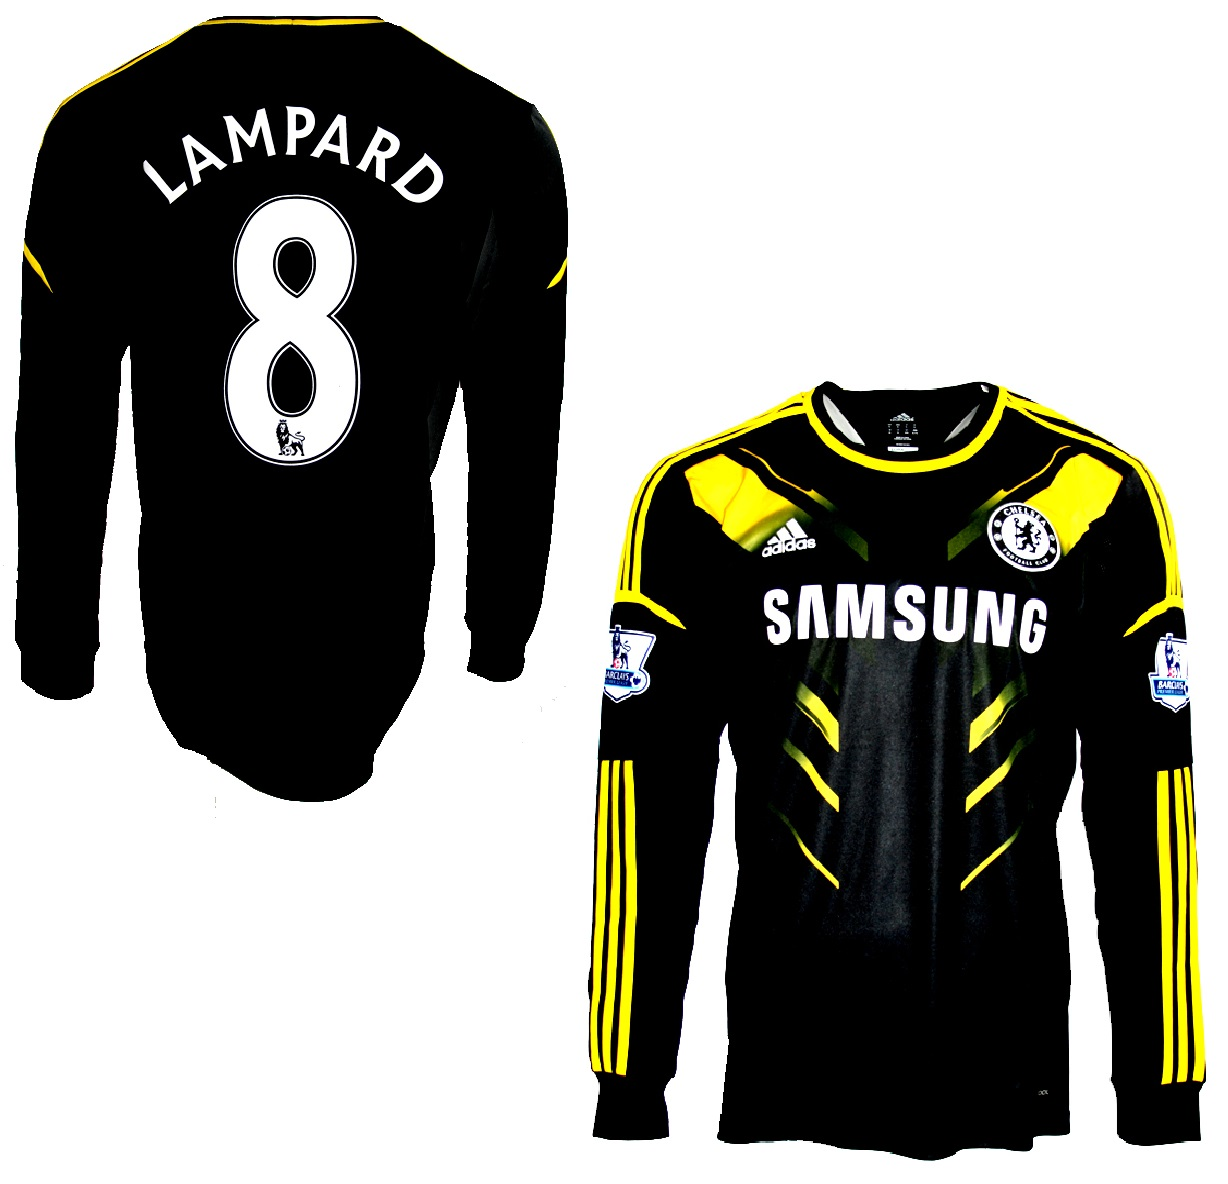 cheap for discount 49d56 80675 Adidas FC Chelsea jersey 8 Frank Lampard 2012/13 match worn ...